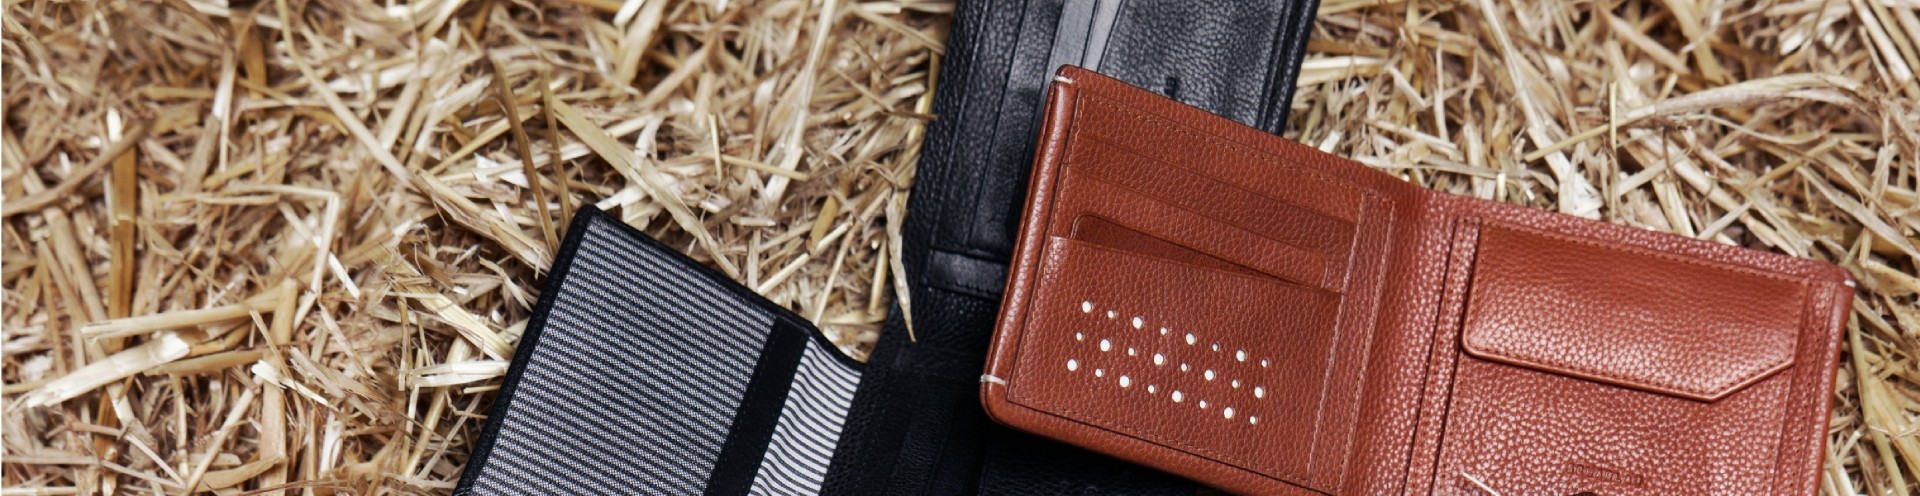 Men's Small Leather Goods High Quality